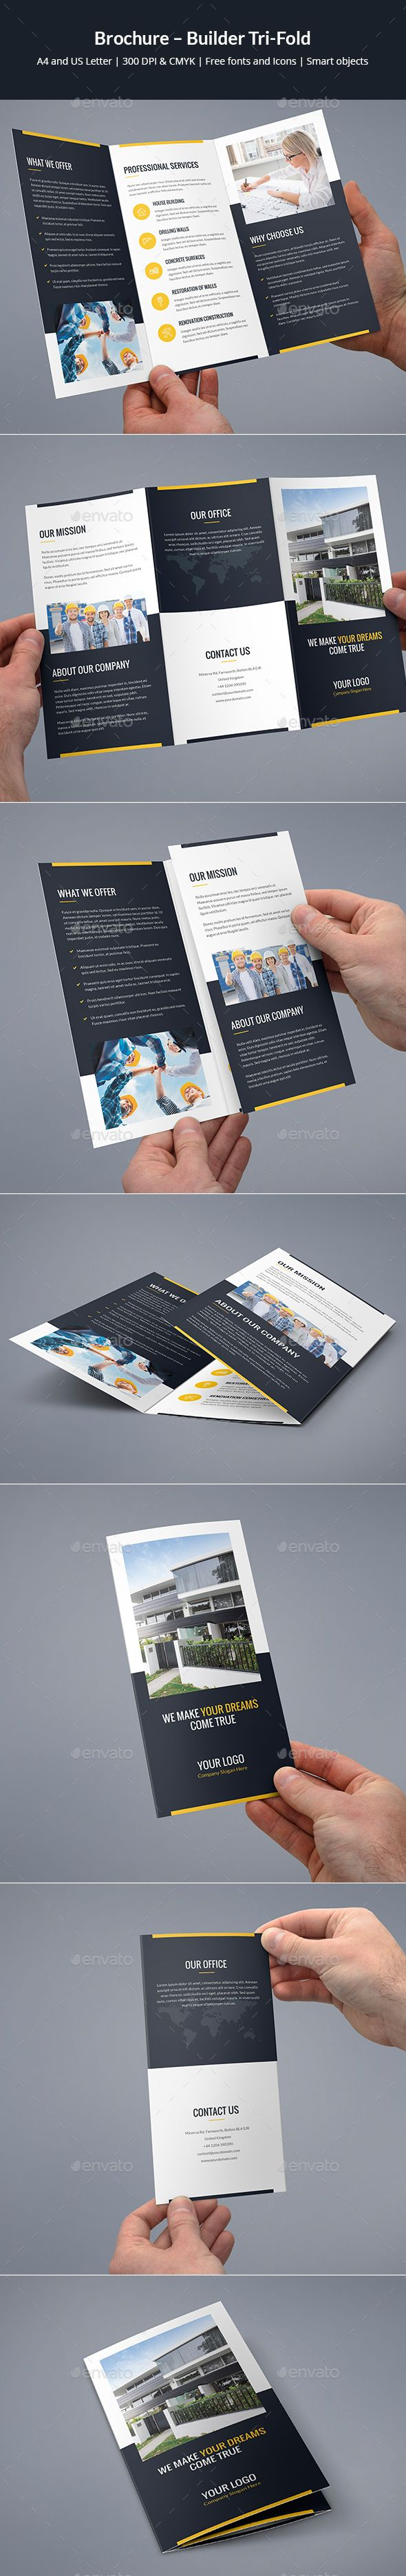 brochure builder tri fold corporate brochures download here